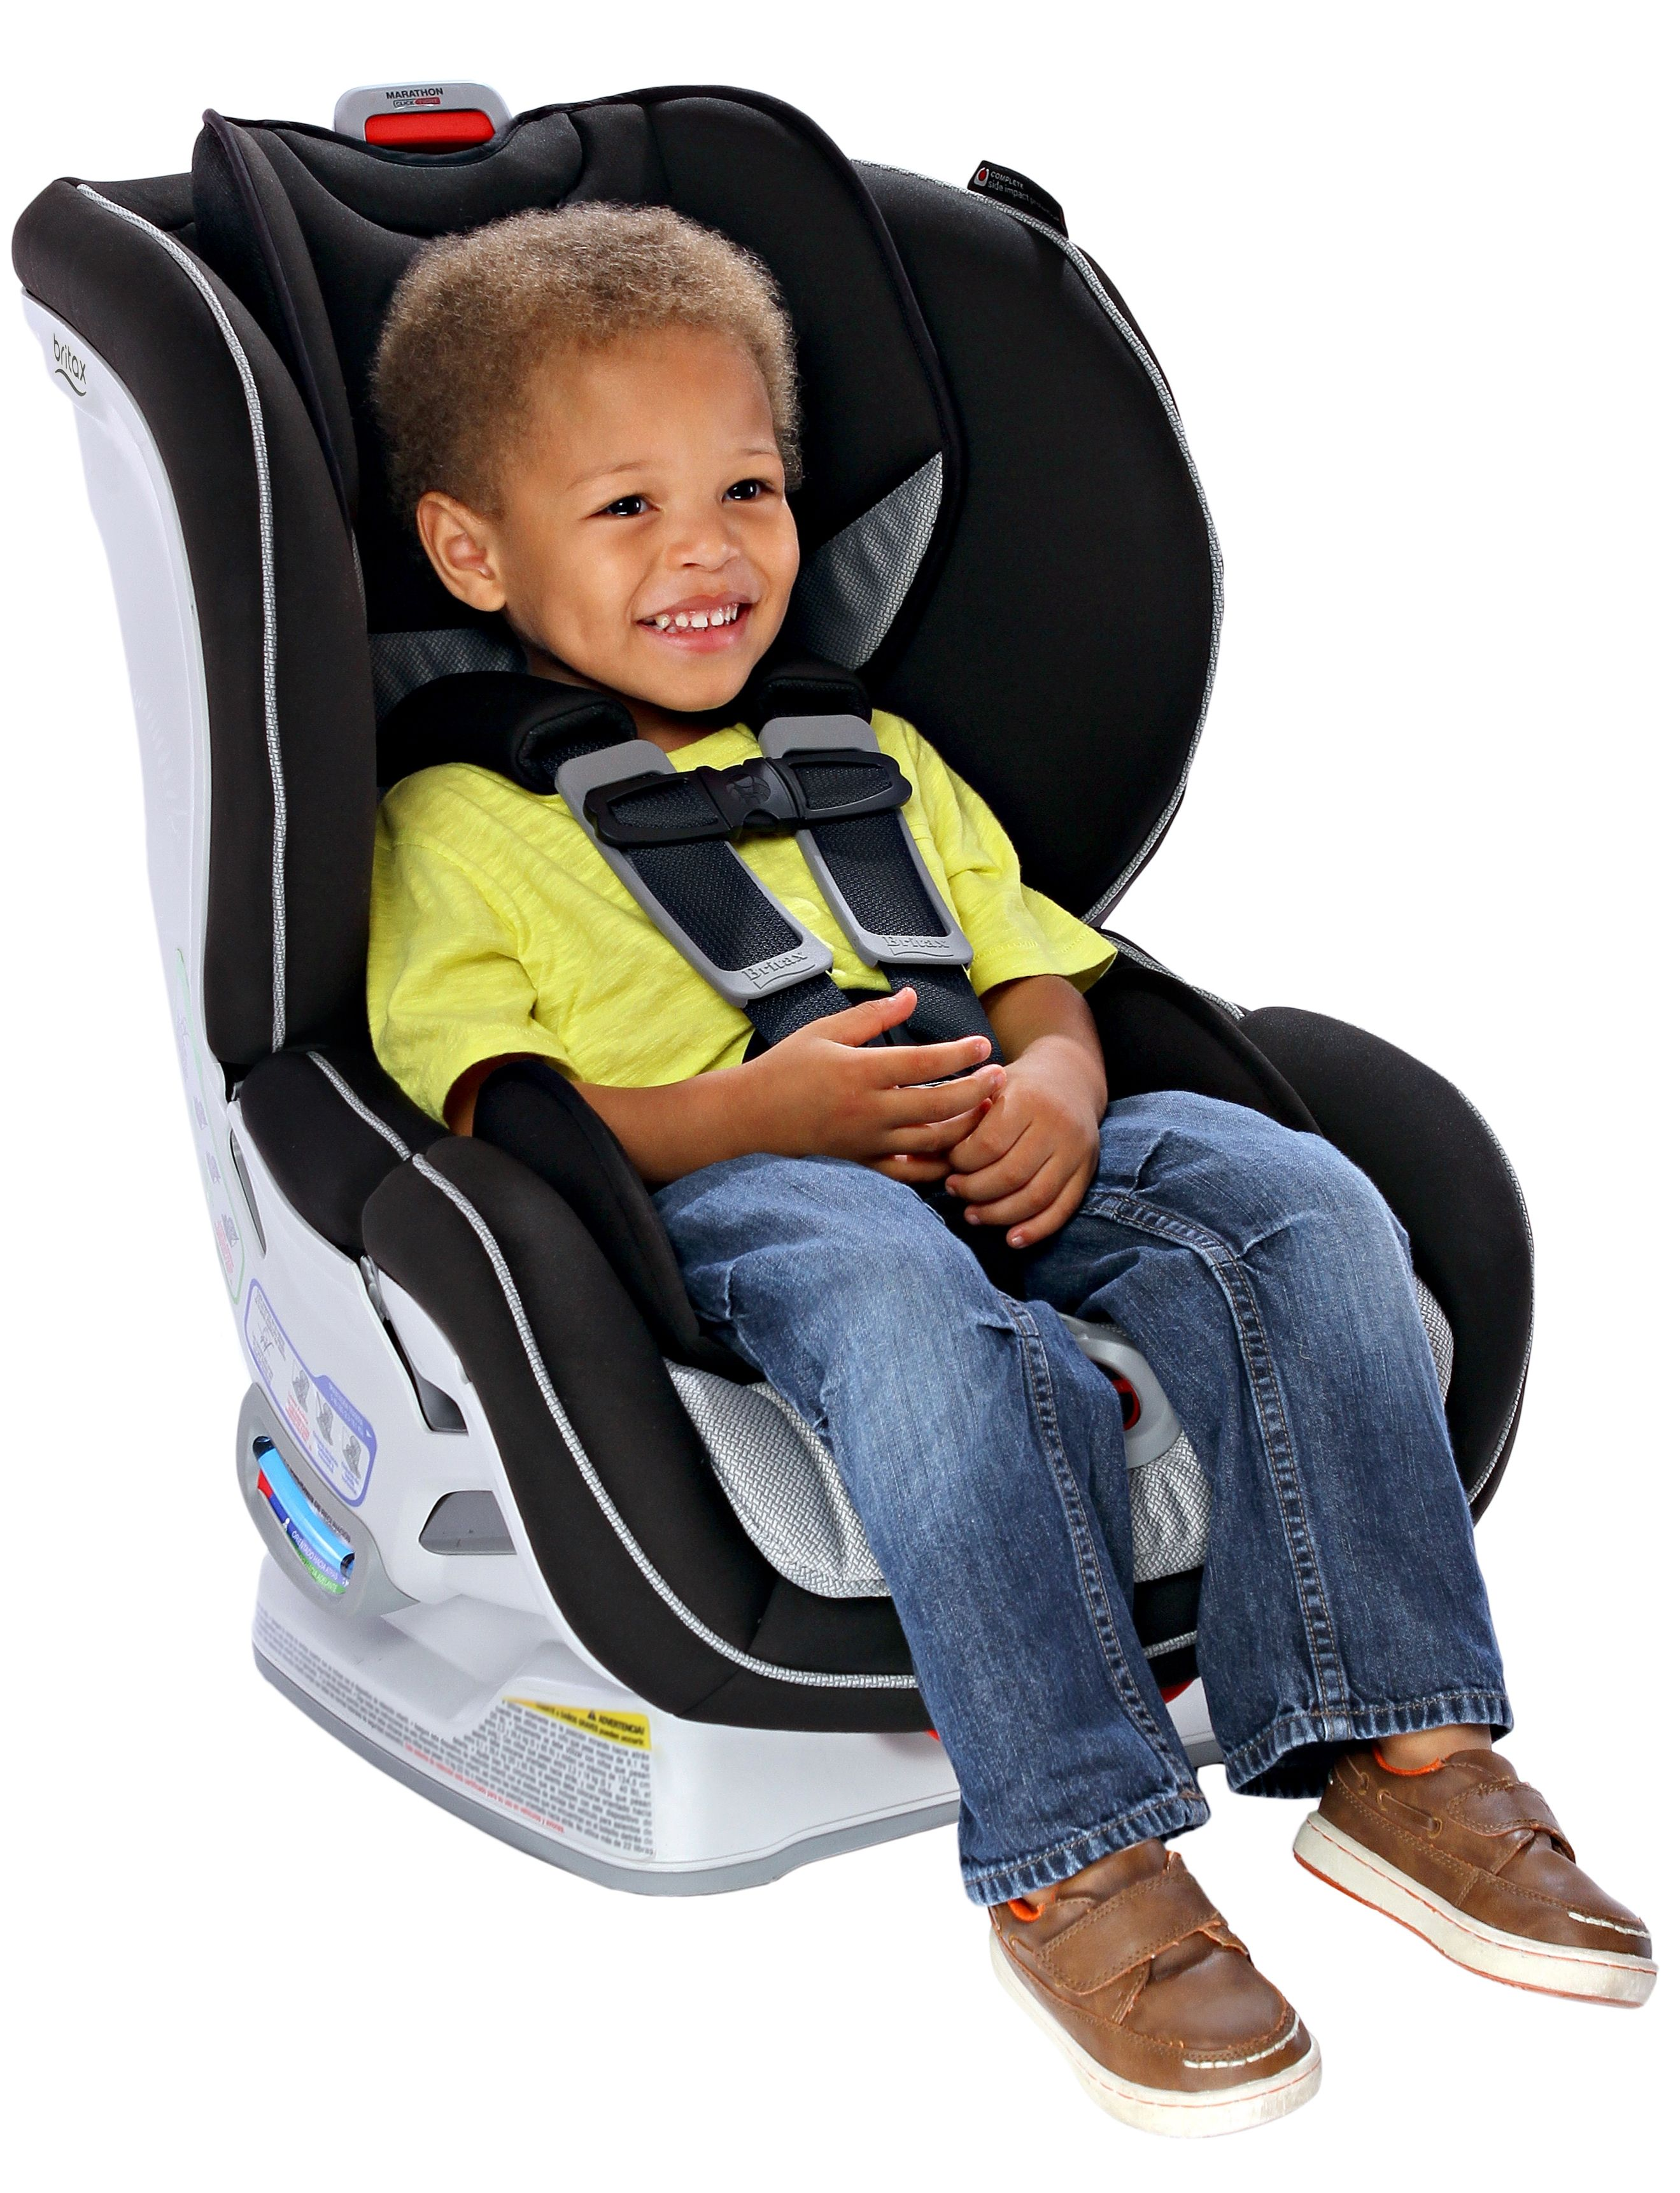 ClickTight Convertible Car Seat From Britax Comes With The Safest And Easiest Installation Ever Check Out Babiesrus CarSeatTradeUp To Find